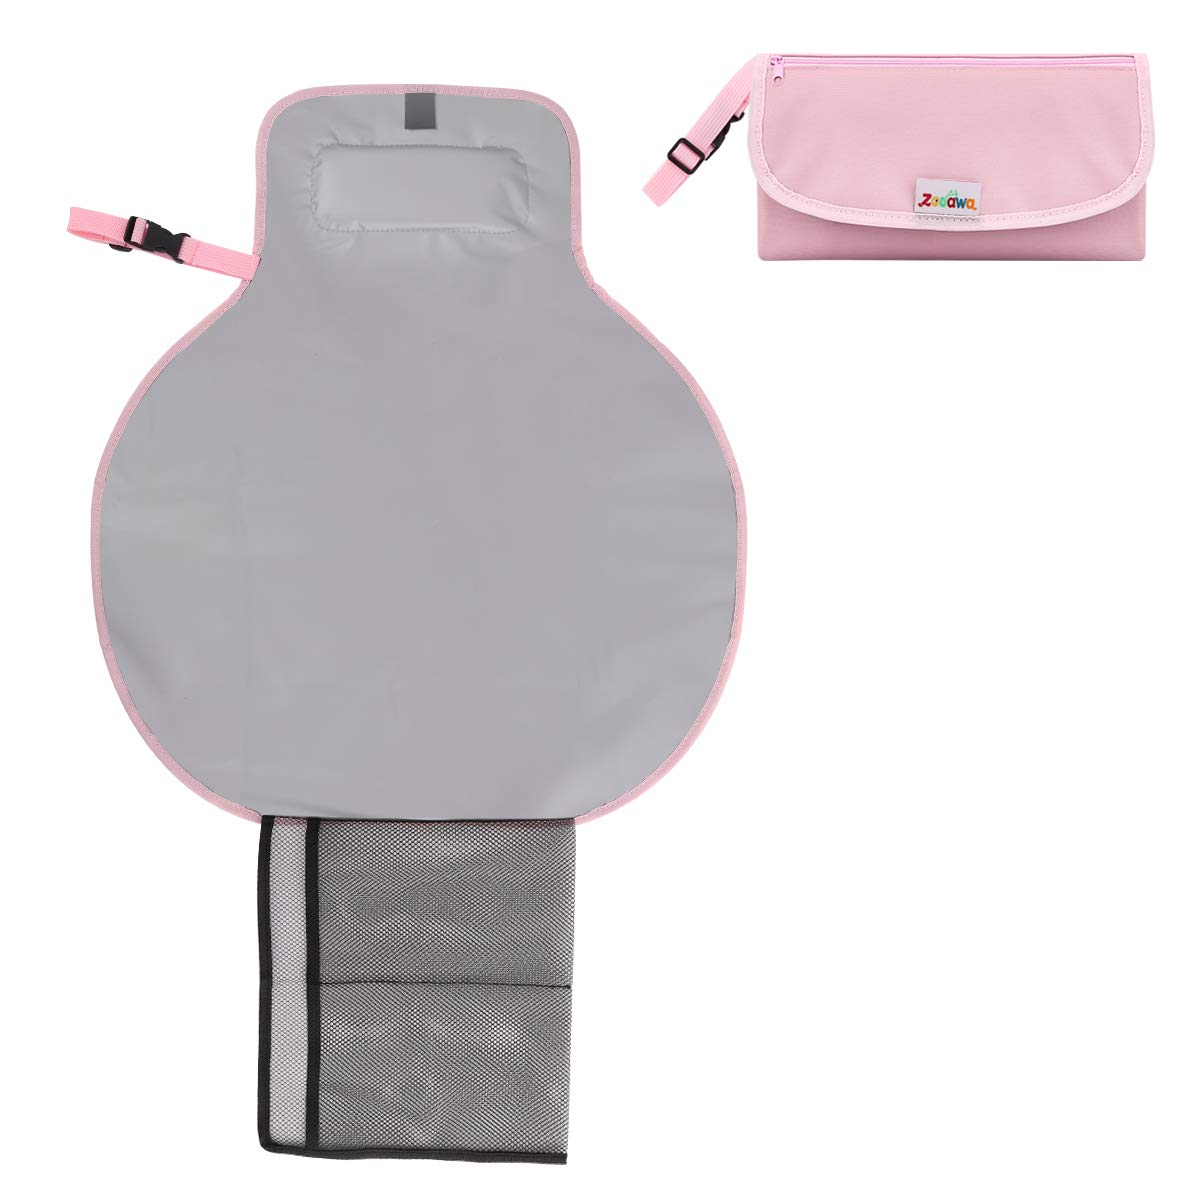 Zooawa Baby Portable Diaper Changing Pad, Lightweight Waterproof Travel Diaper Clutch, Diaper Changing Mat Station with Mesh Pockets and Padded Head Rest, Pink by Zooawa